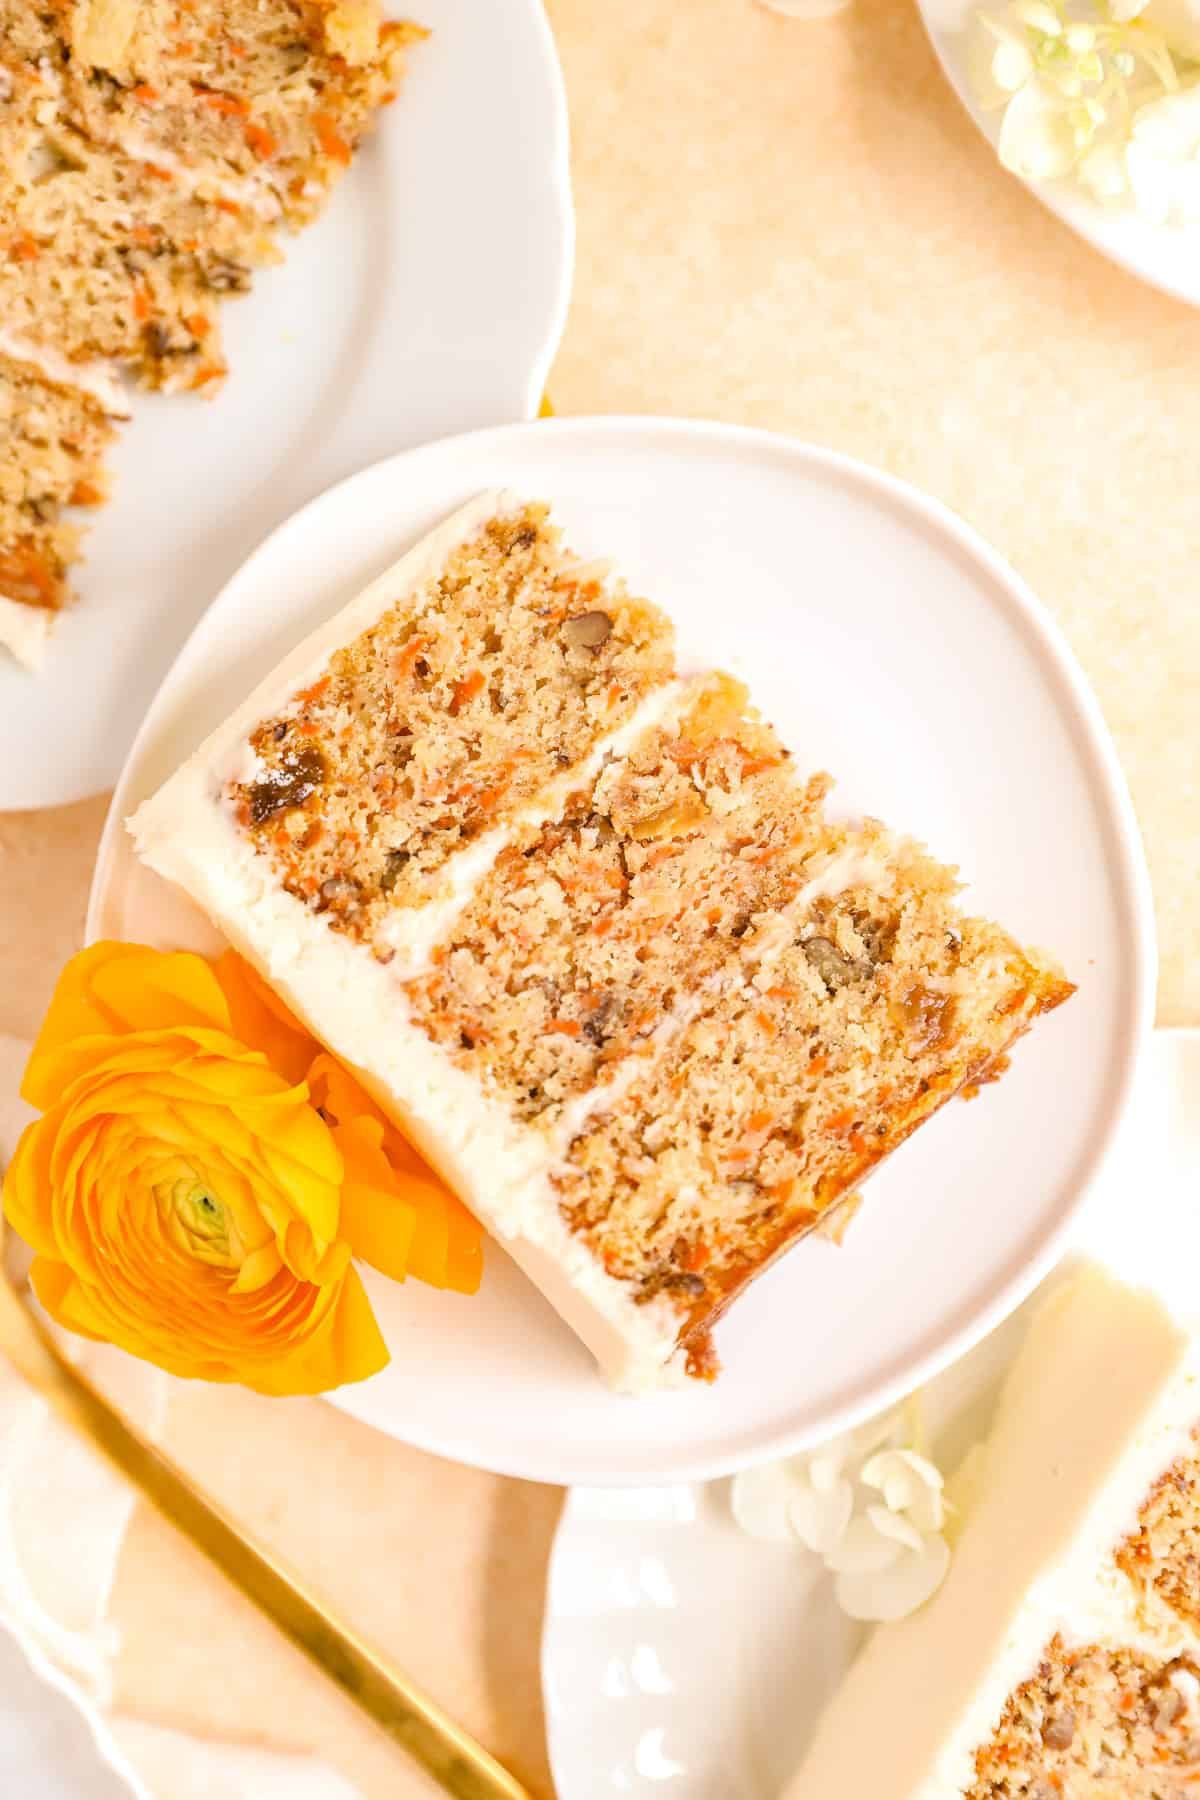 carrot cake with pineapple slices on plates stacked up with ranunculus flowers for decoration.